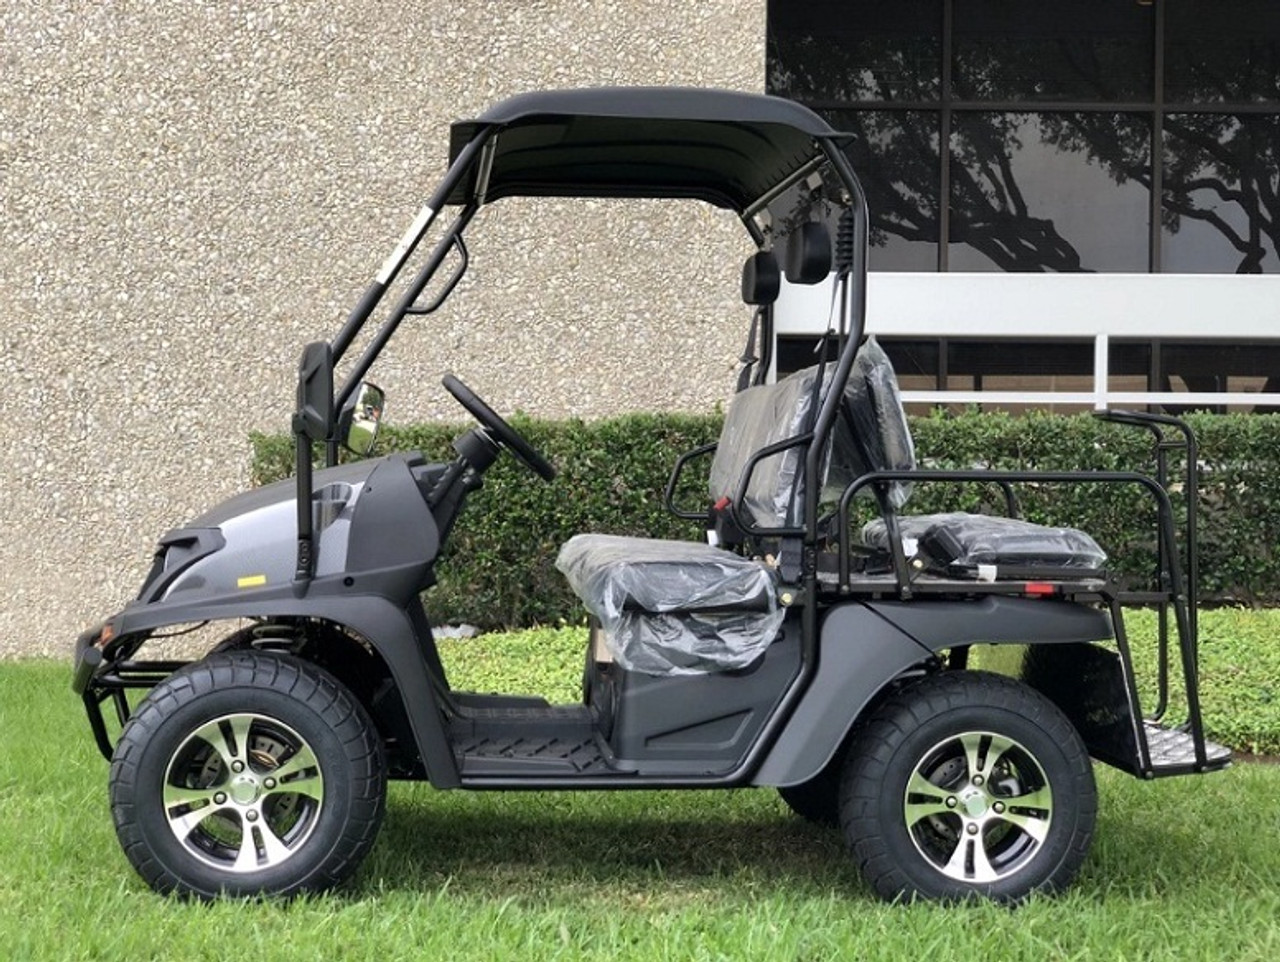 CarbonFiber- Fully Loaded Cazador OUTFITTER 200 Golf Cart 4 Seater Street Legal UTV - Fully Assembled and Tested